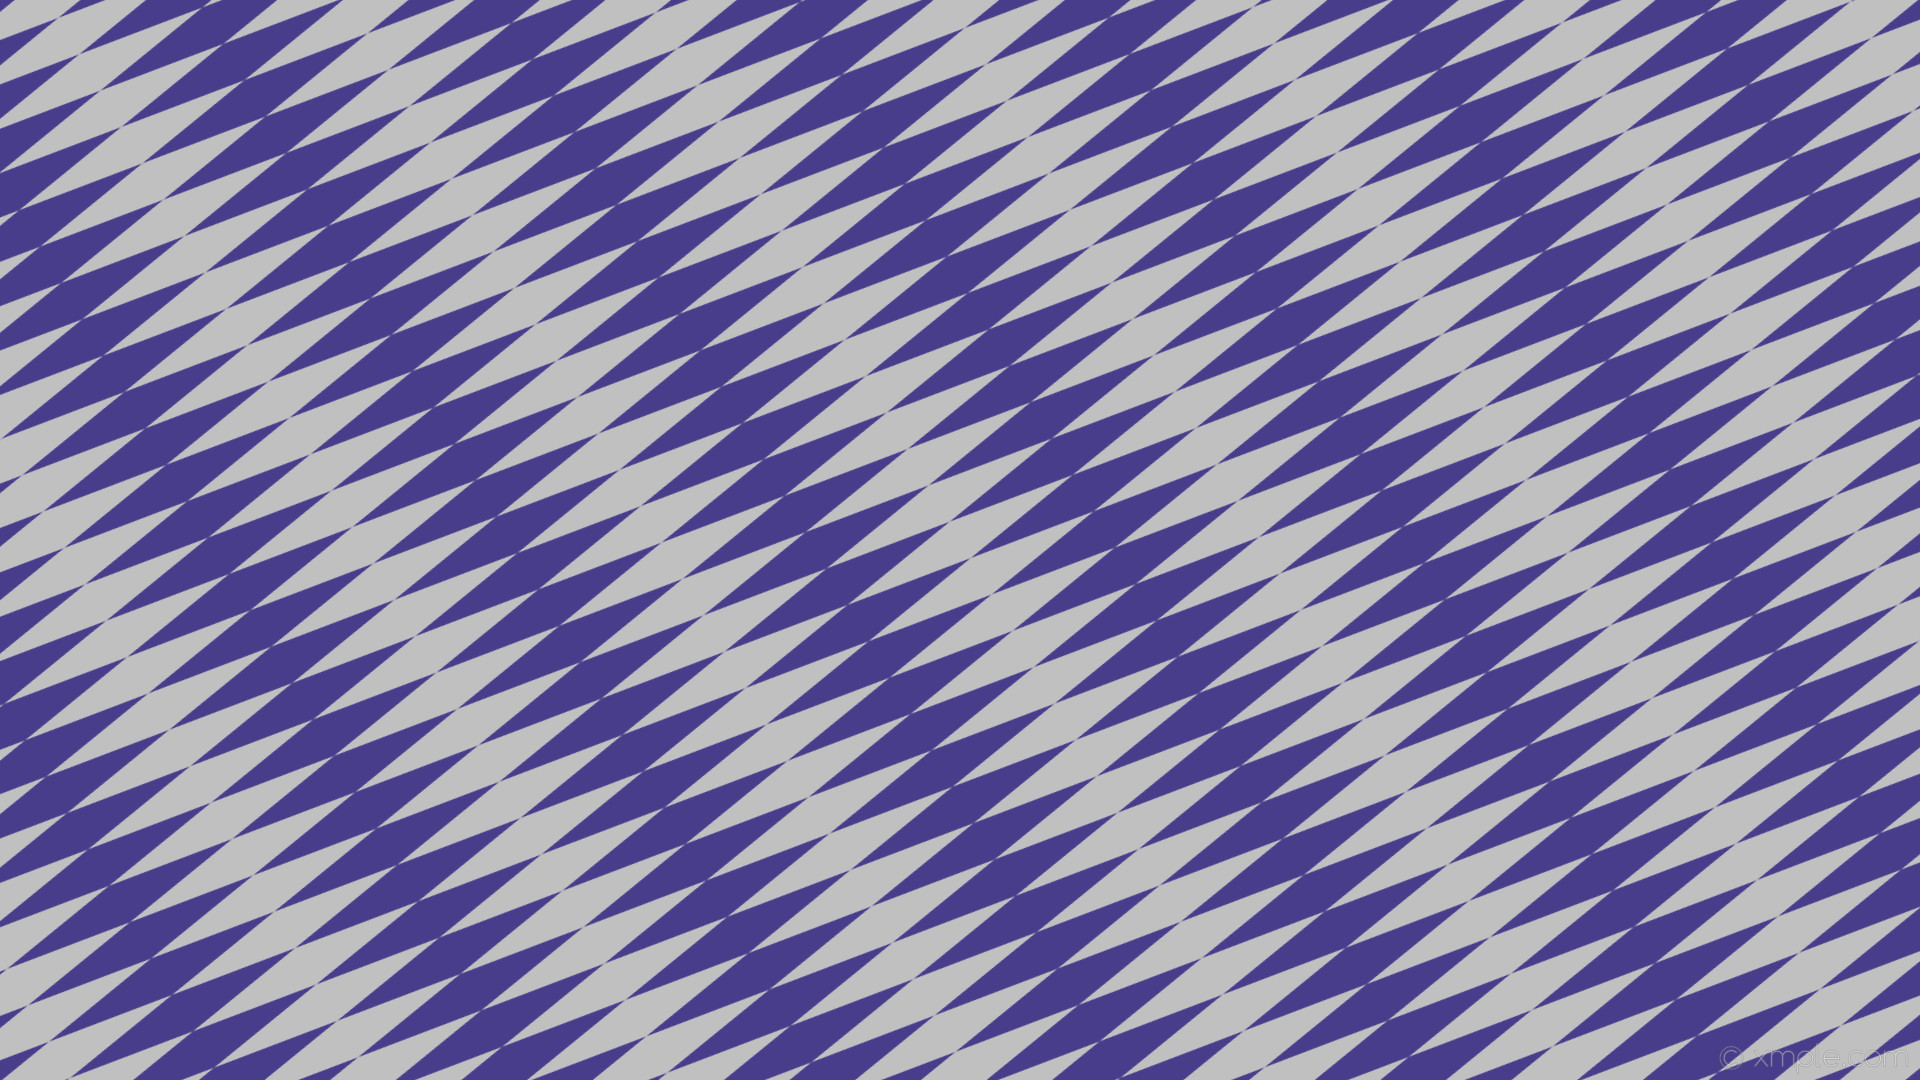 1920x1080 wallpaper diamond lozenge rhombus purple grey silver dark slate blue  #c0c0c0 #483d8b 30°